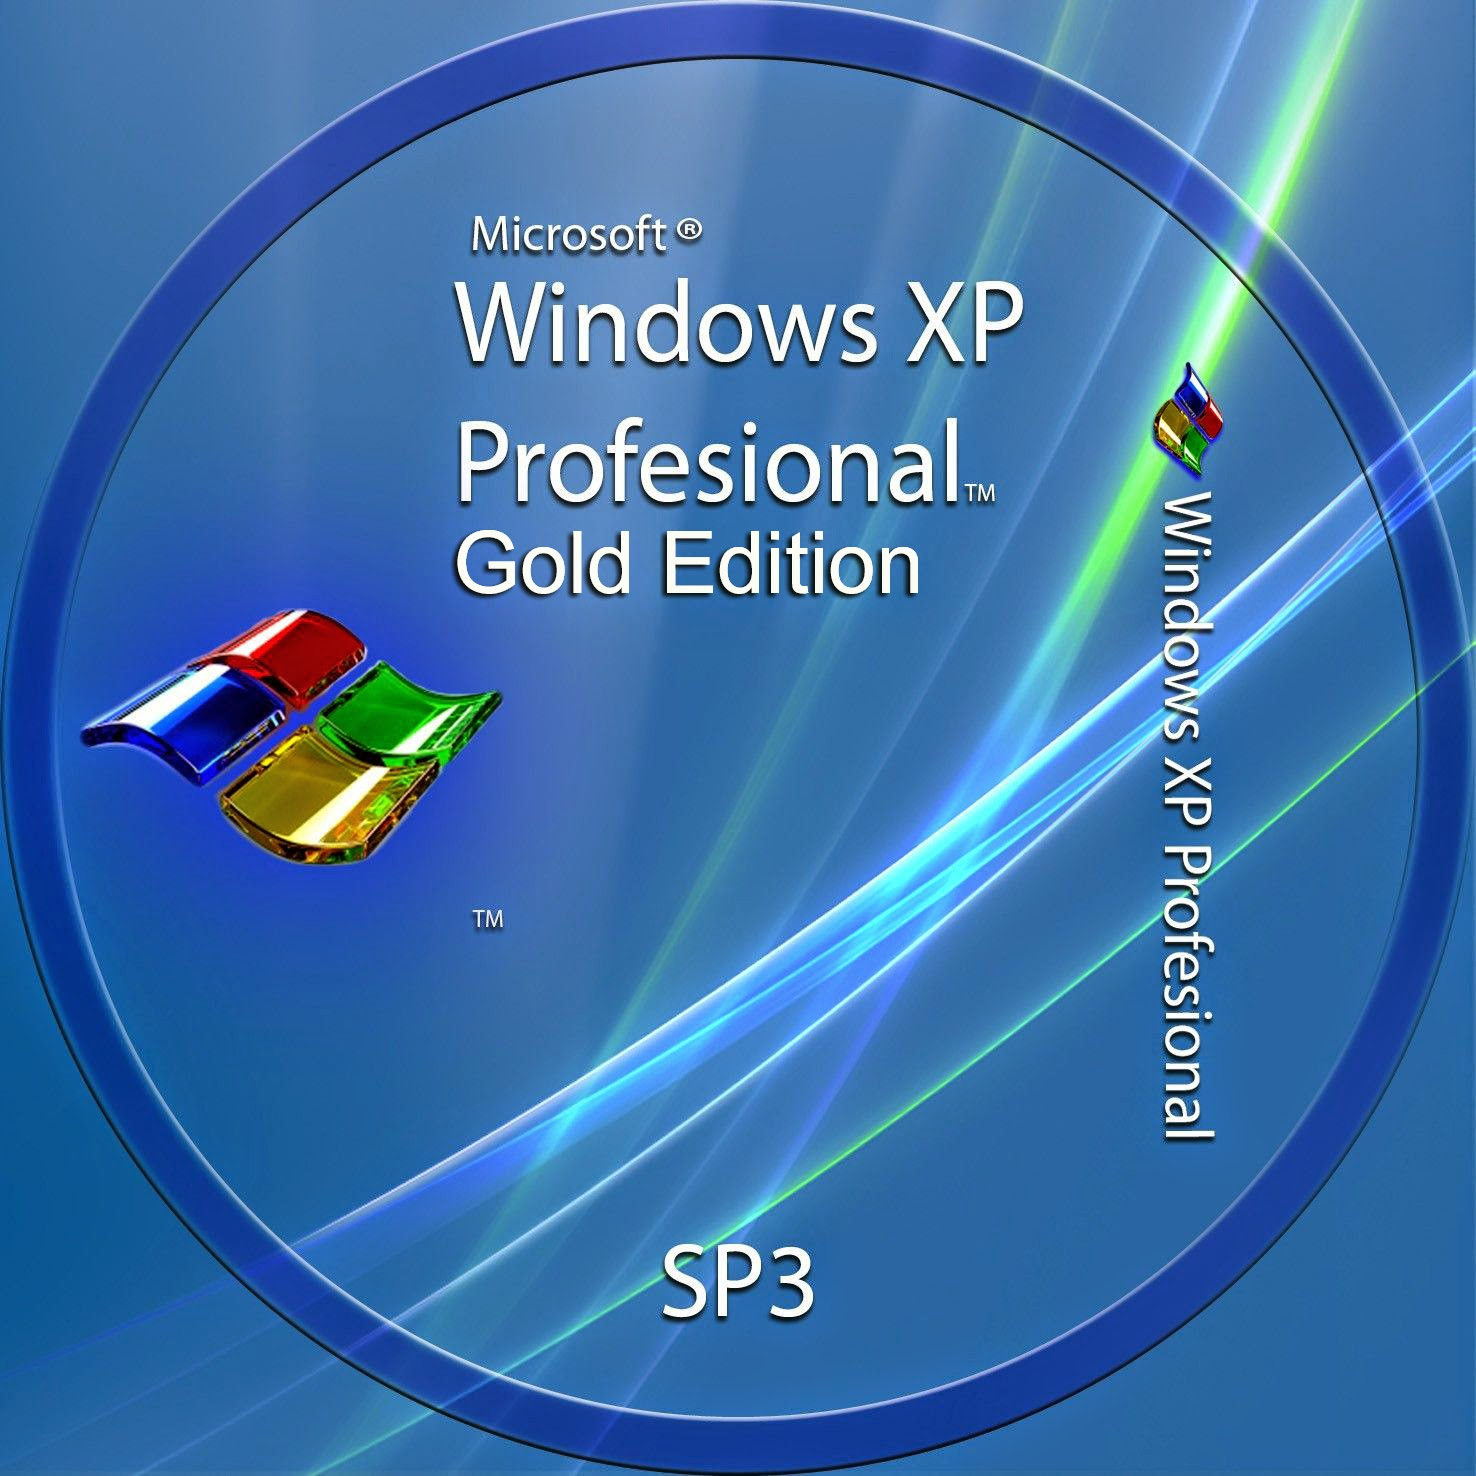 Windows XP ISO Full Version Free Download [32 & 64 Bit]